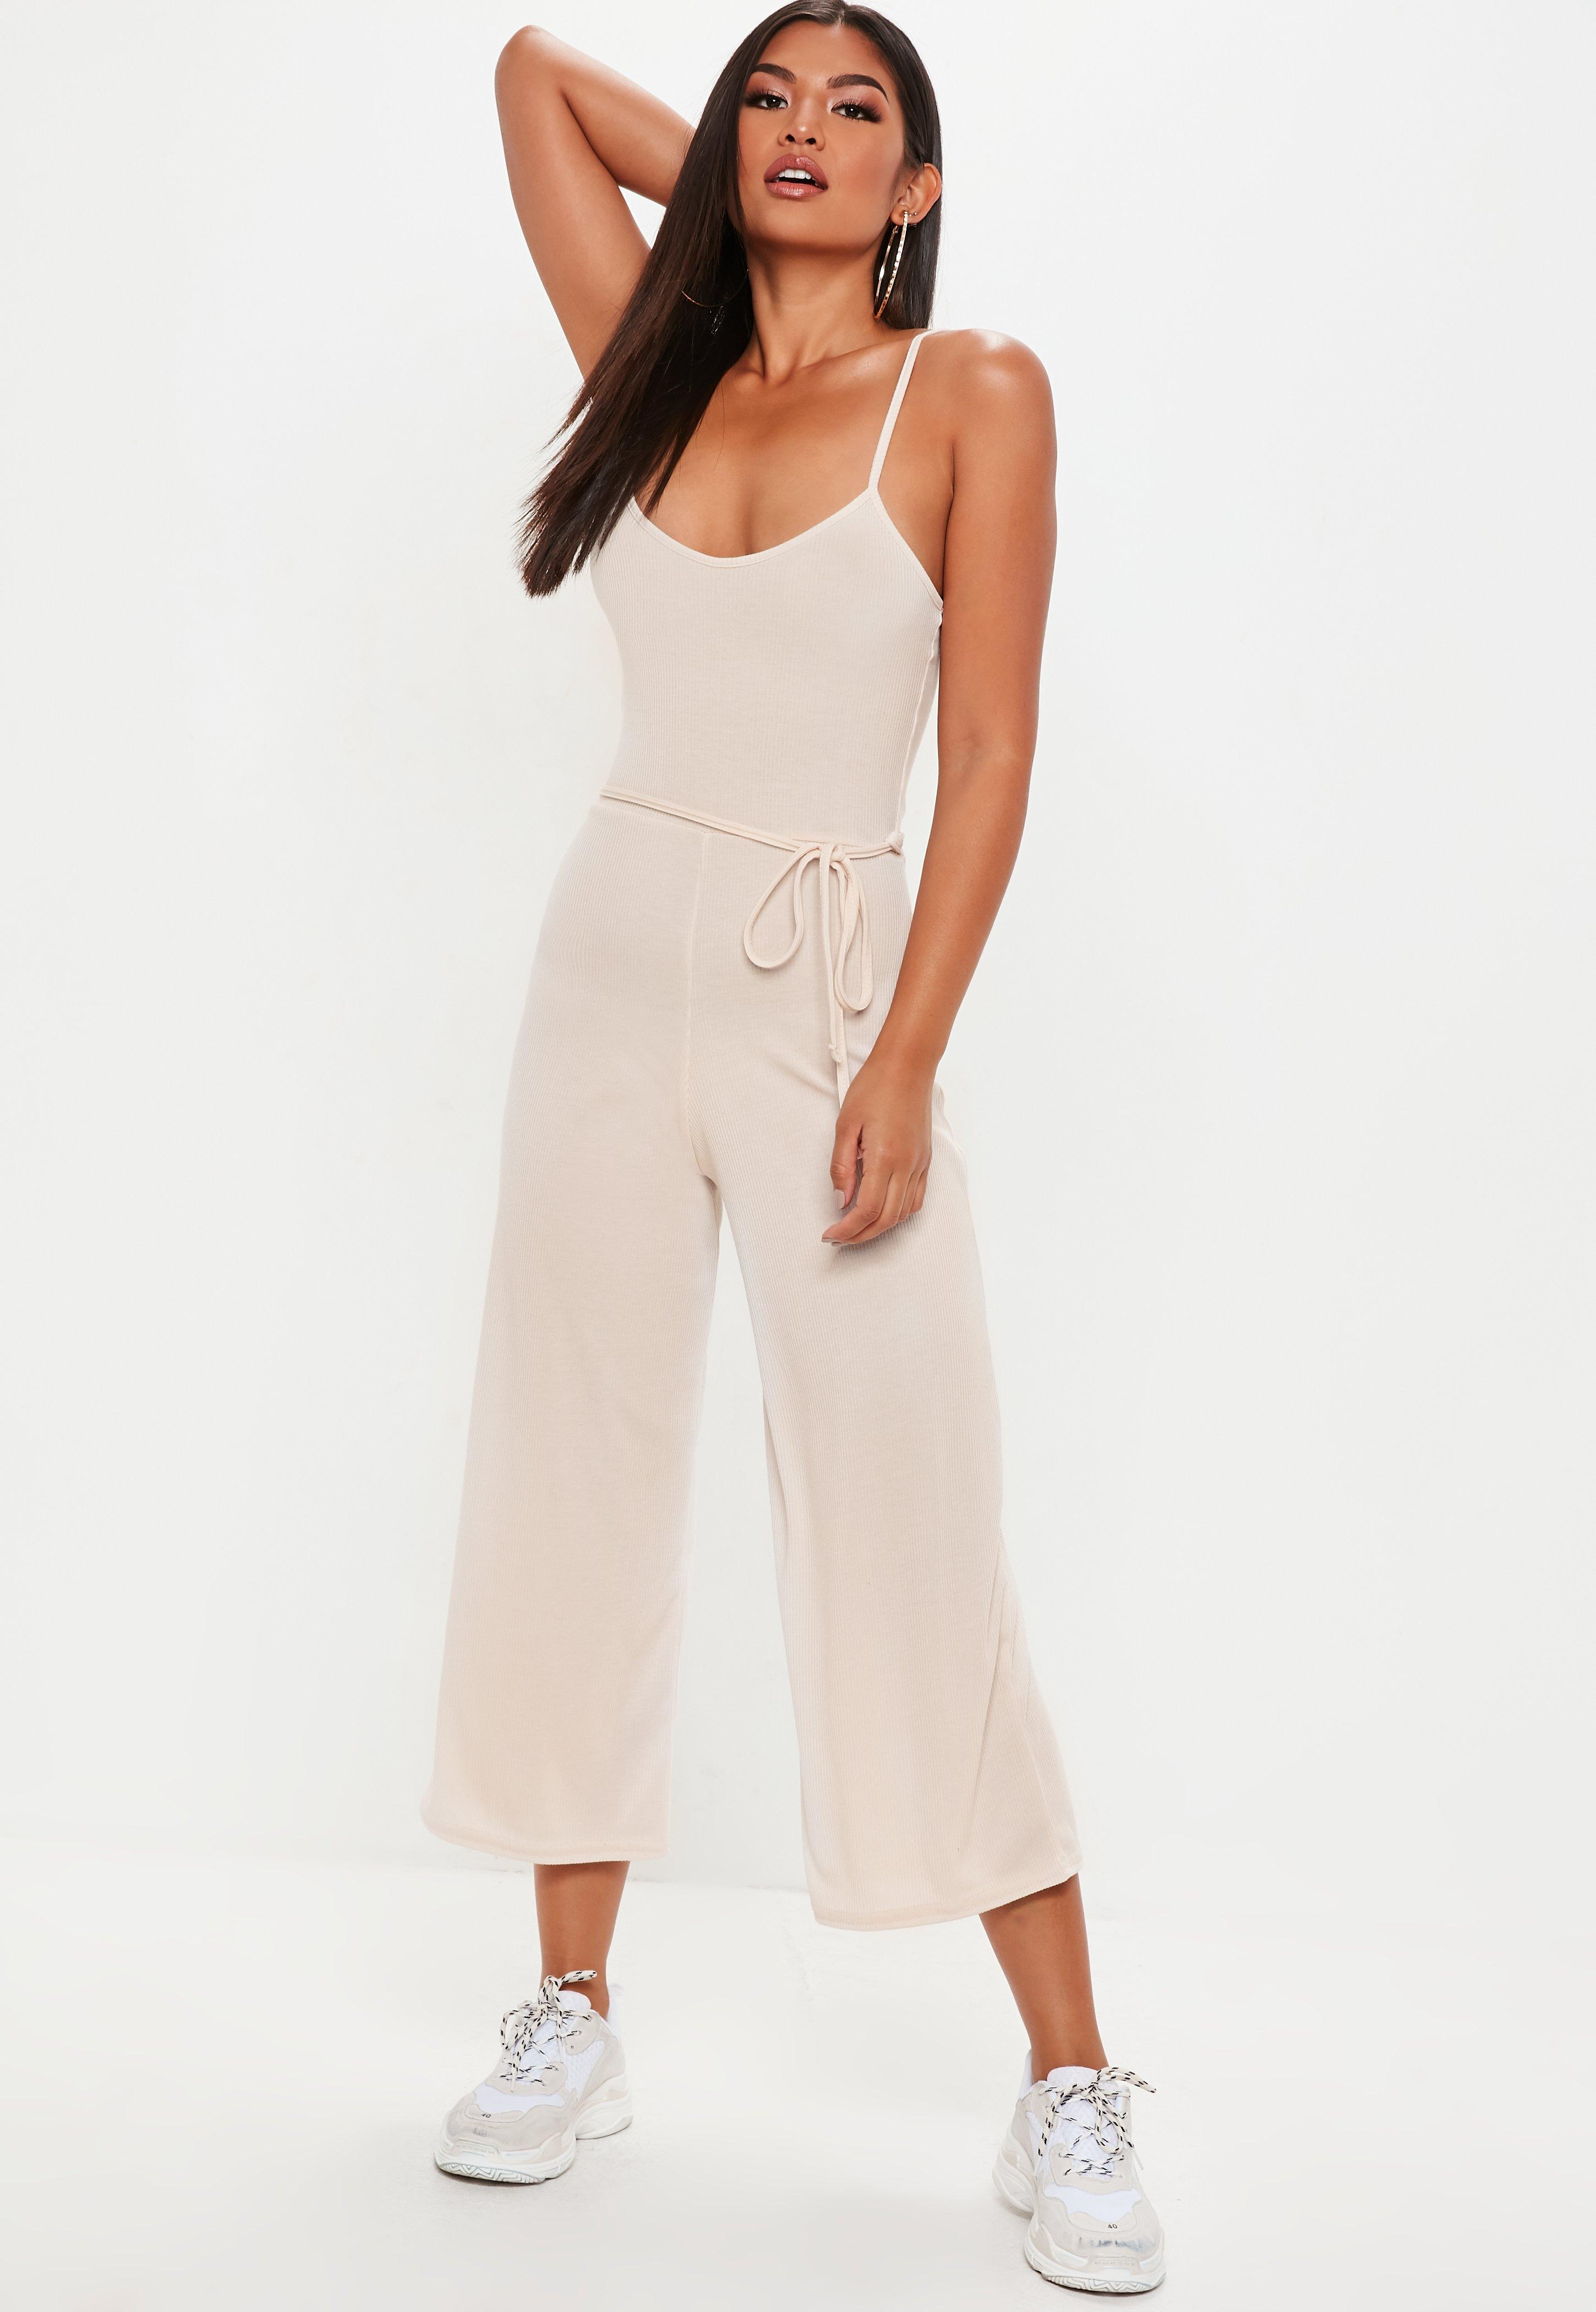 cc3644450ef Lyst - Missguided Nude Ribbed Culotte Jumpsuit in Natural - Save 14%